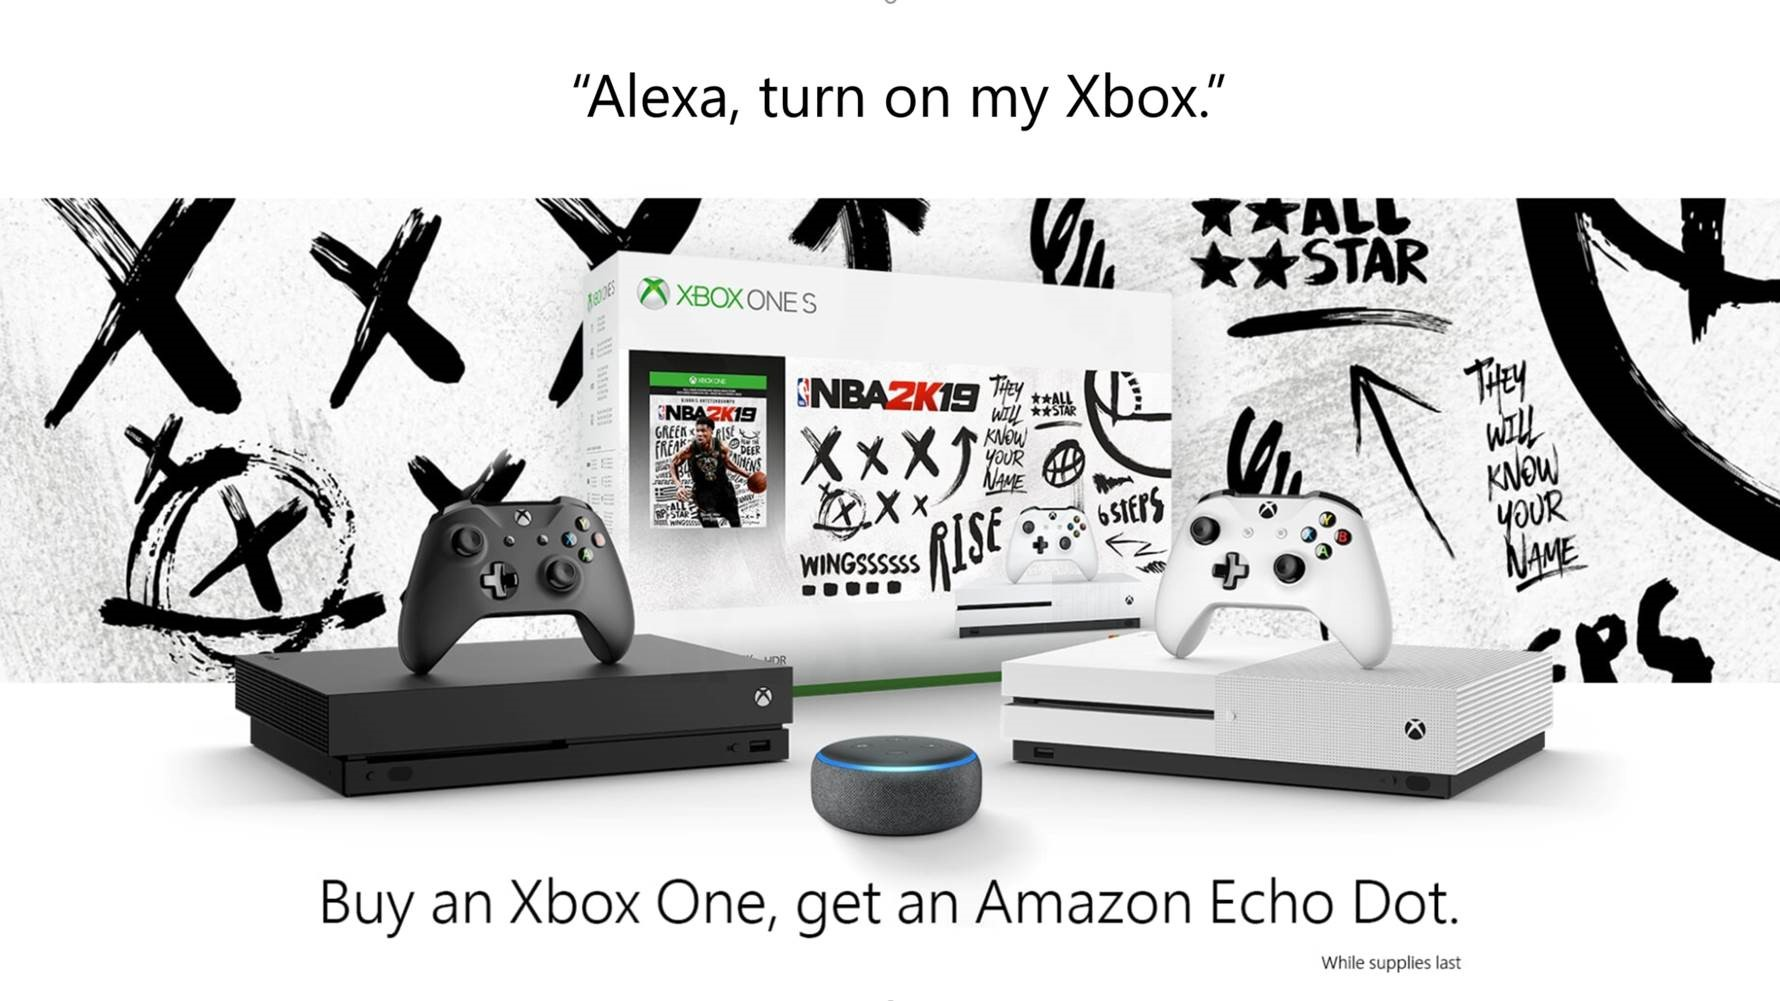 October 2018 Xbox Update: Amazon Echo